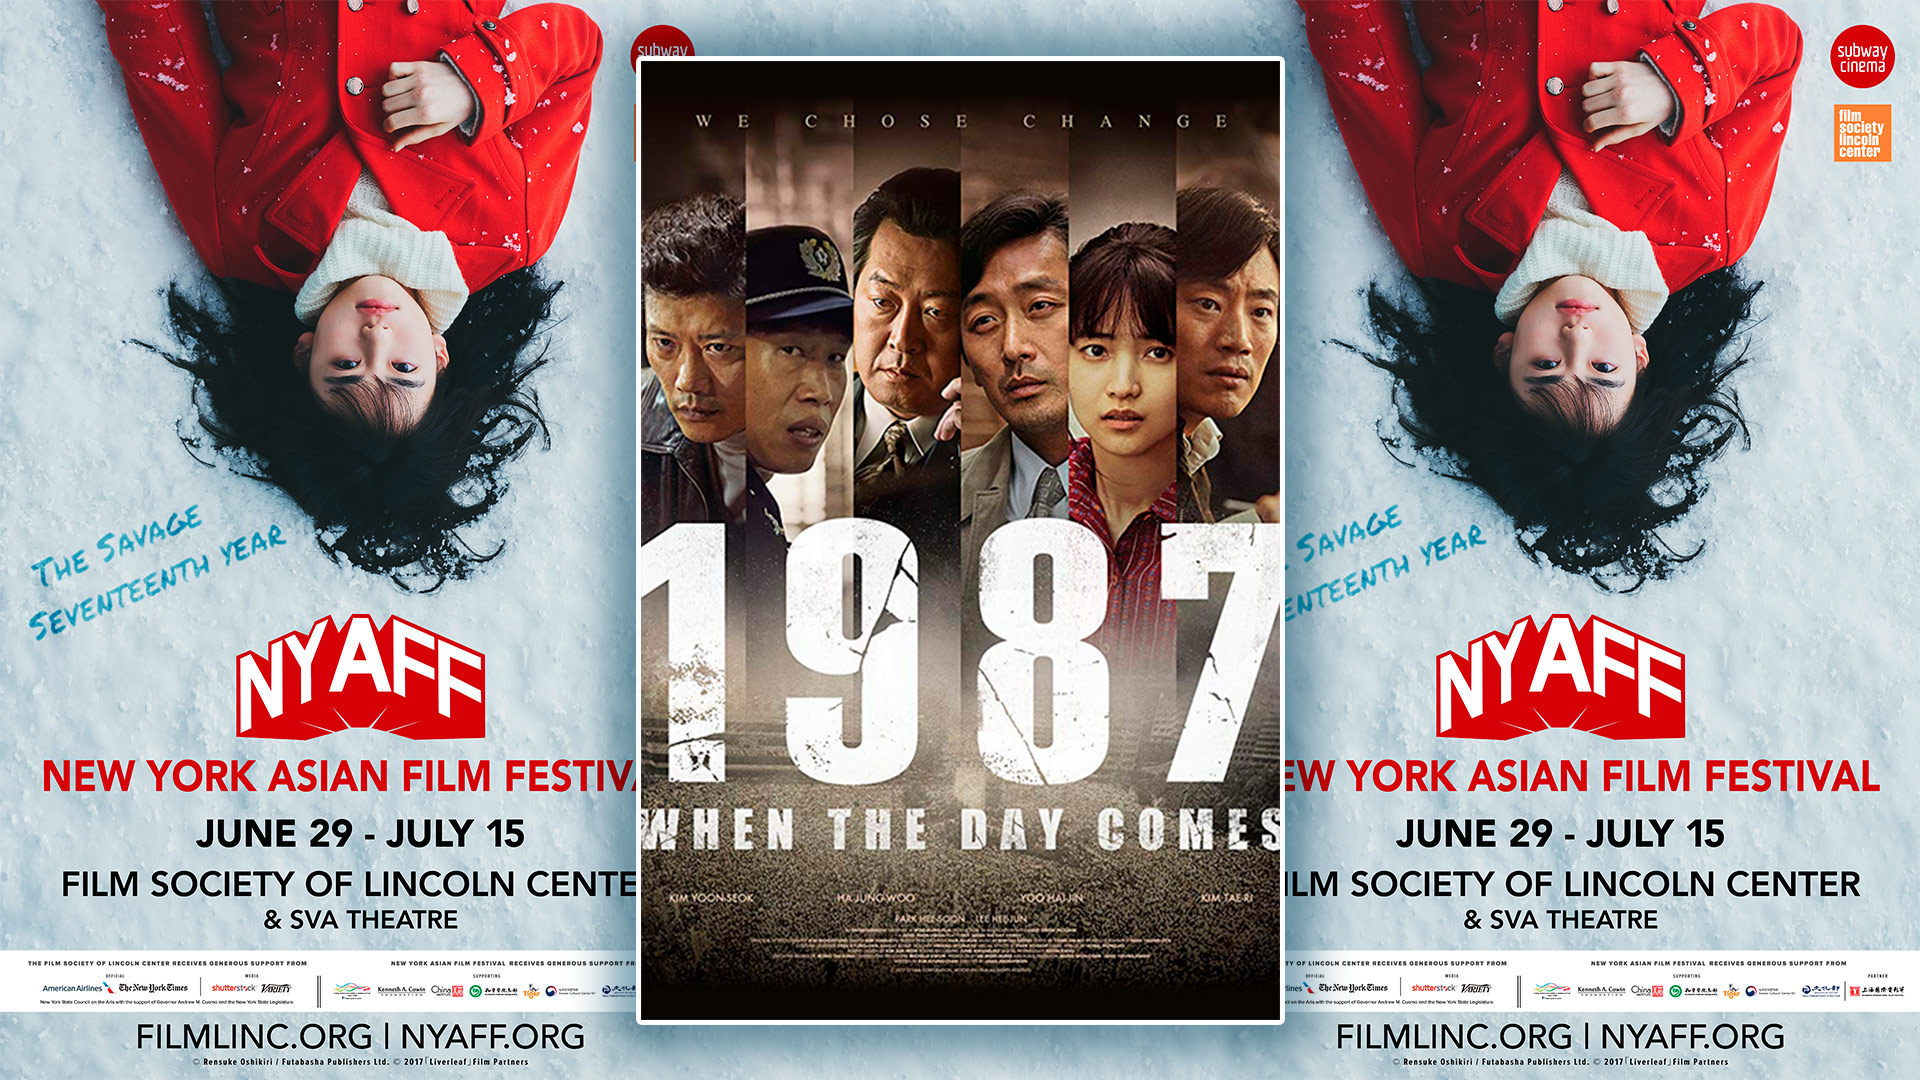 [NYAFF 2018] Critique du film 1987: When The Day Comes